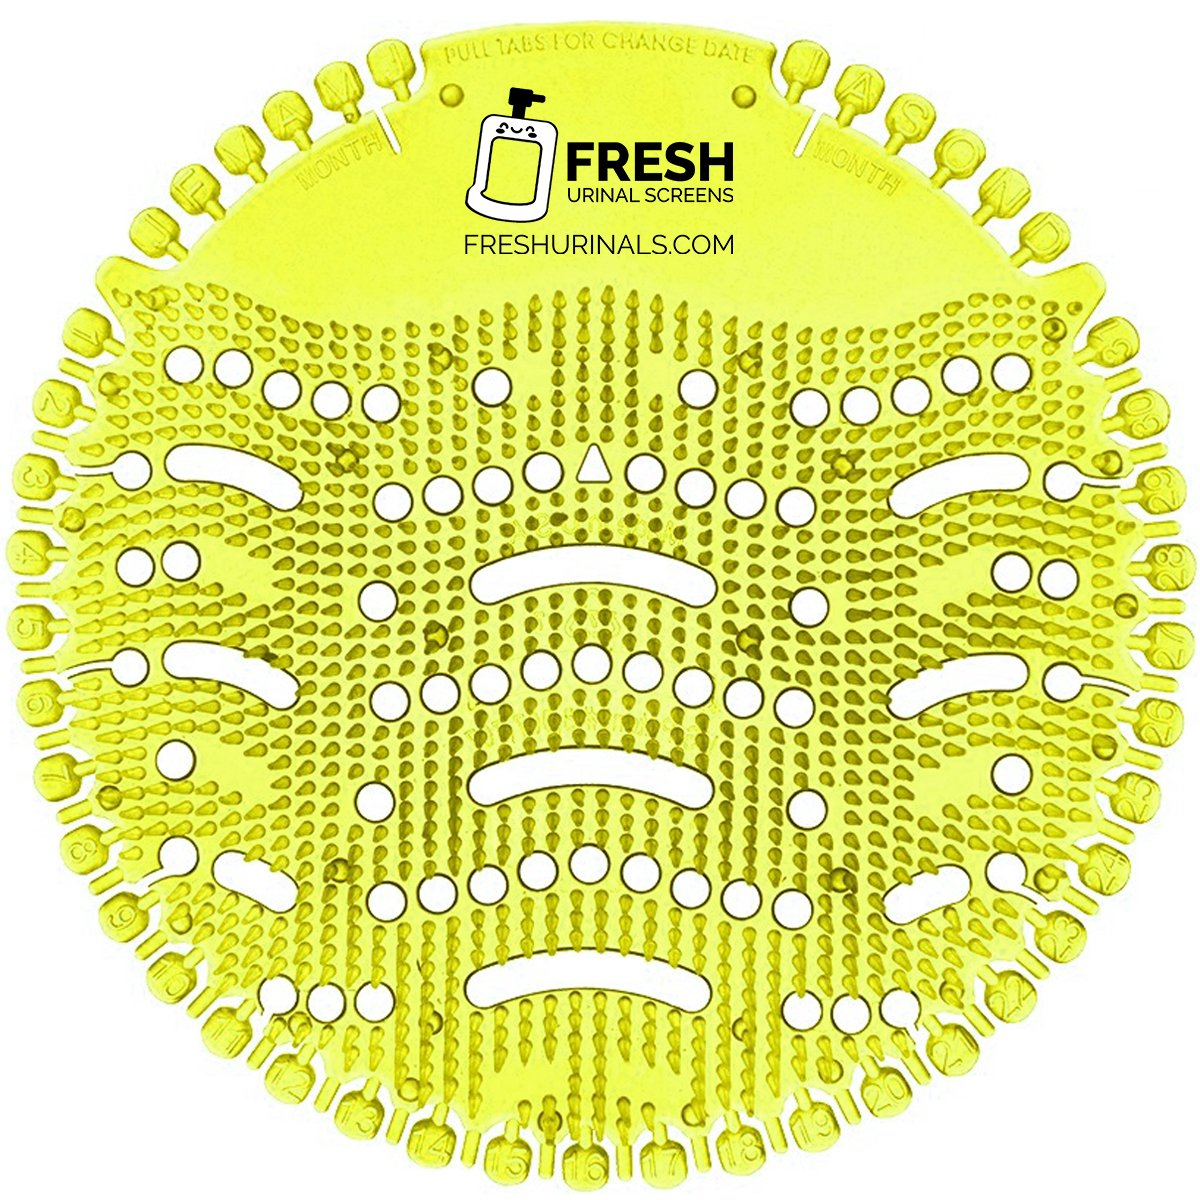 Urinal Screen Deodorizer (10 Pack) - Scent Lasts for Up to 5000 Flushes - Anti-Splash & Odor Neutralizer - Ideal for Bathroom, Restroom, Office, Restaurant, School - Yellow Lemon Fragrance by Fresh Urinal Screens